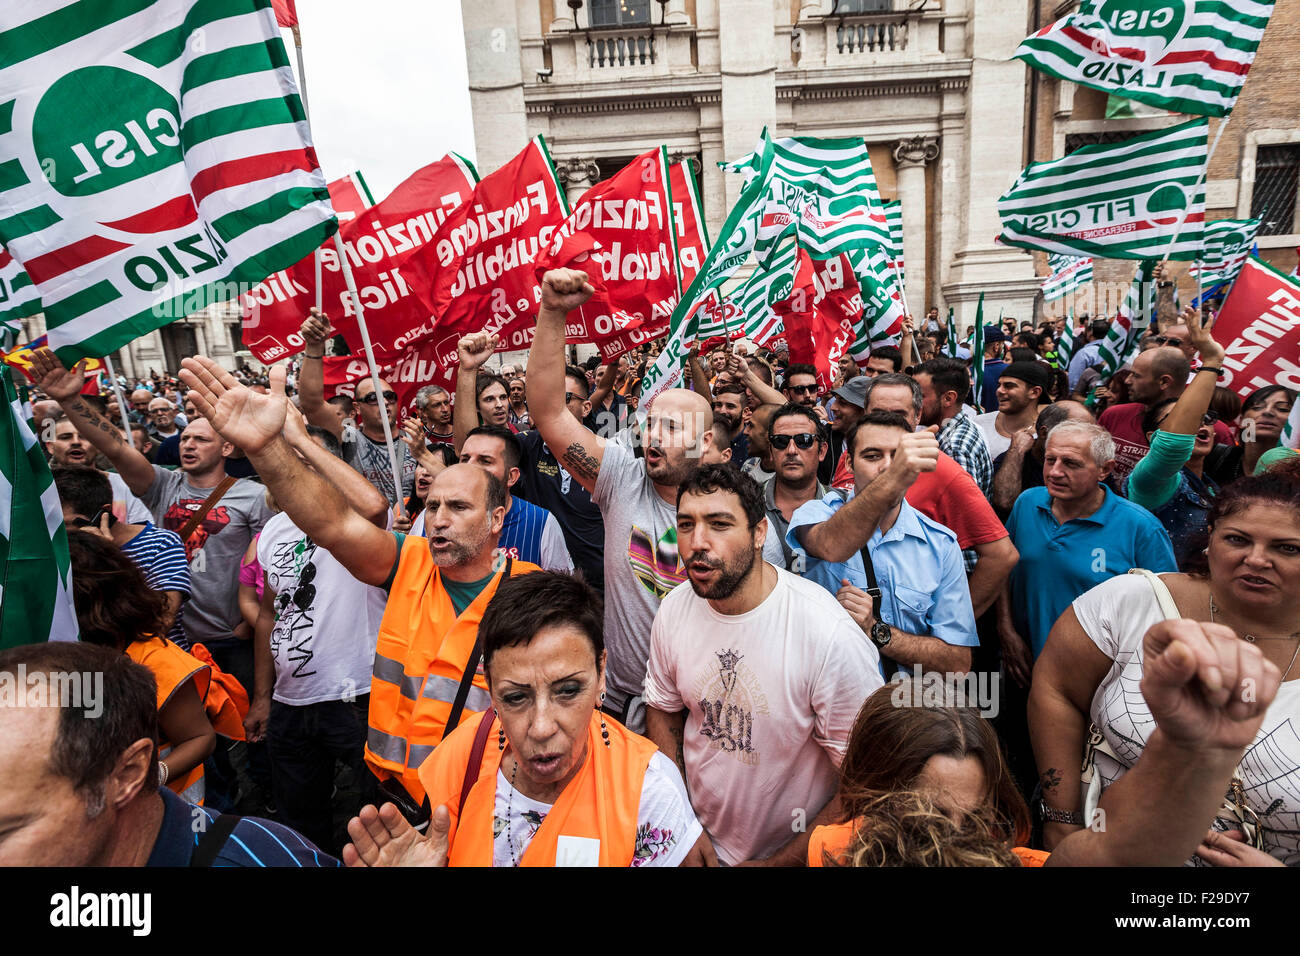 Rome, Italy. 14th Sep, 2015. AMA's employees wave union flags as they take part in a demonstration to protest against Stock Photo